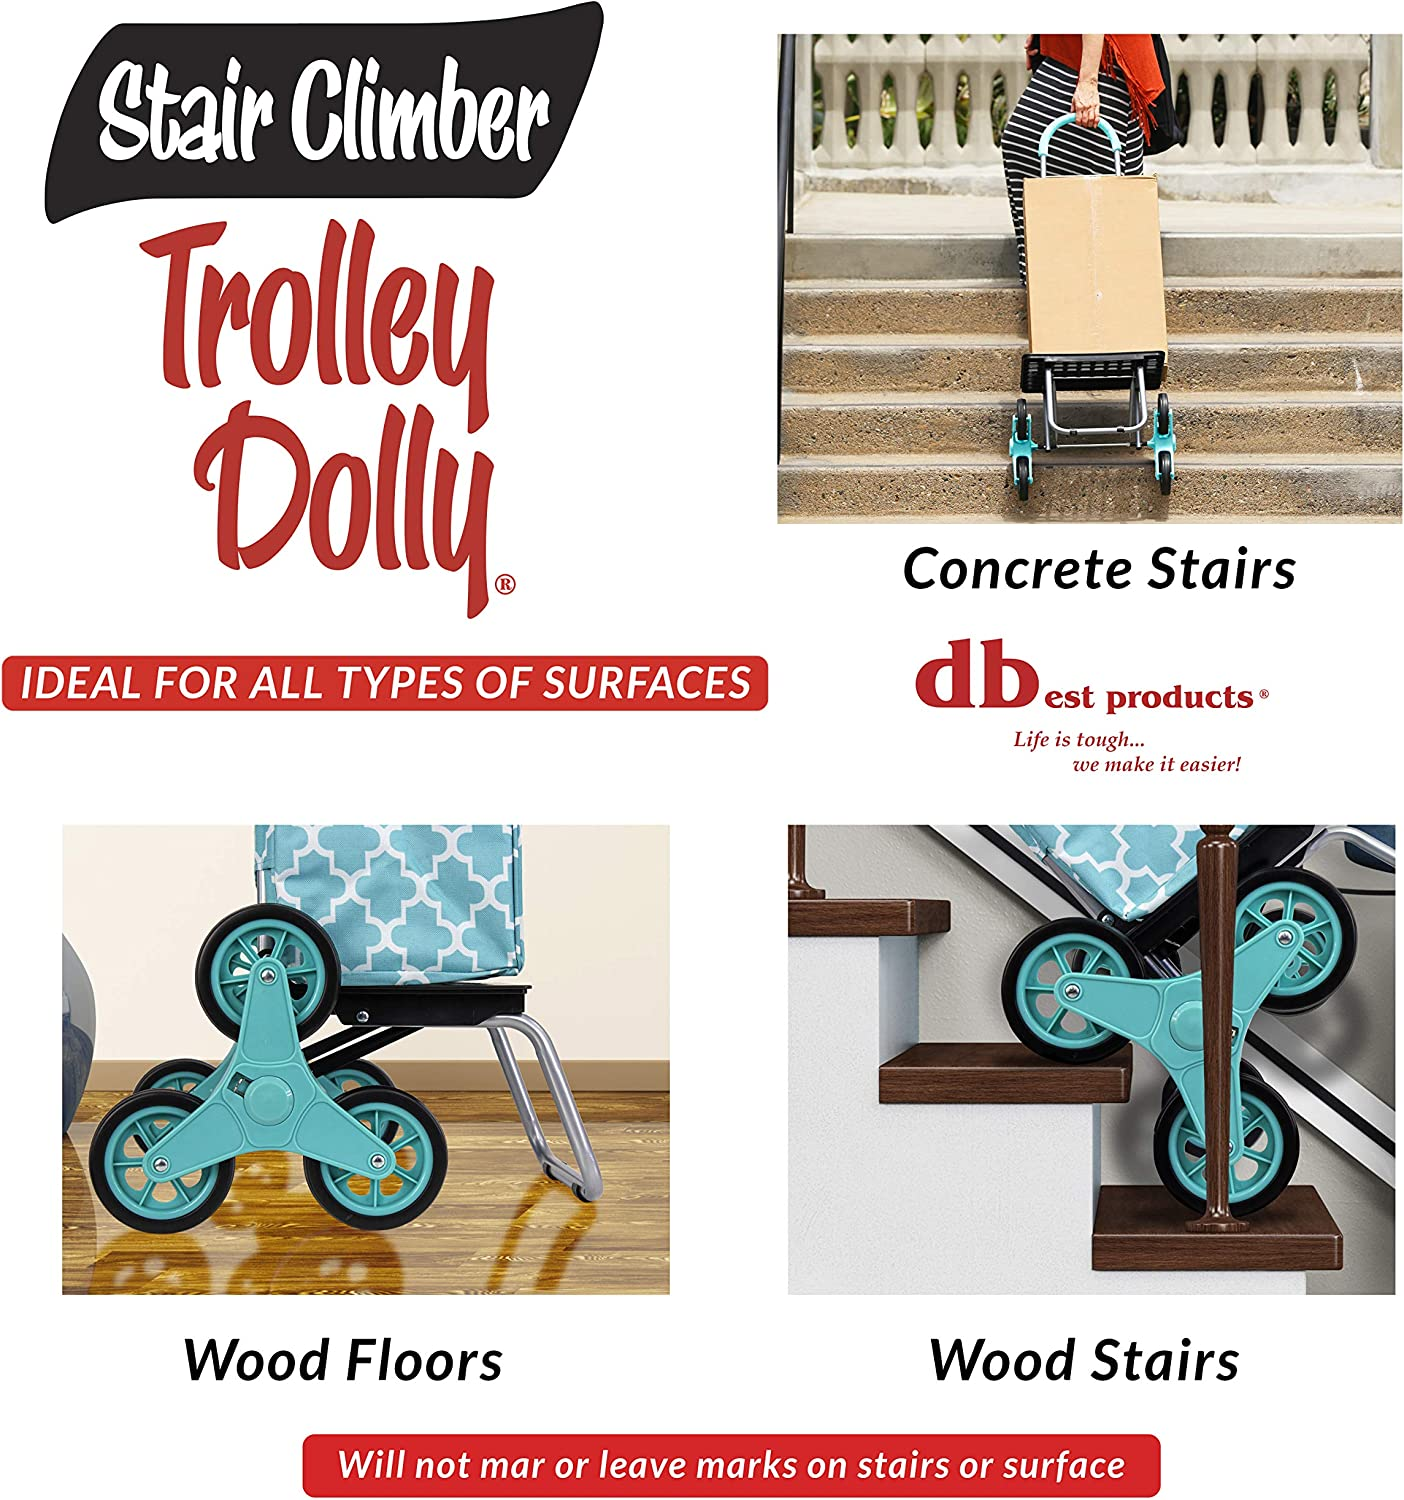 dbest products Stair Climber Trolley Dolly Morrocan Tile Shopping Grocery Foldable Cart Condo Apartment